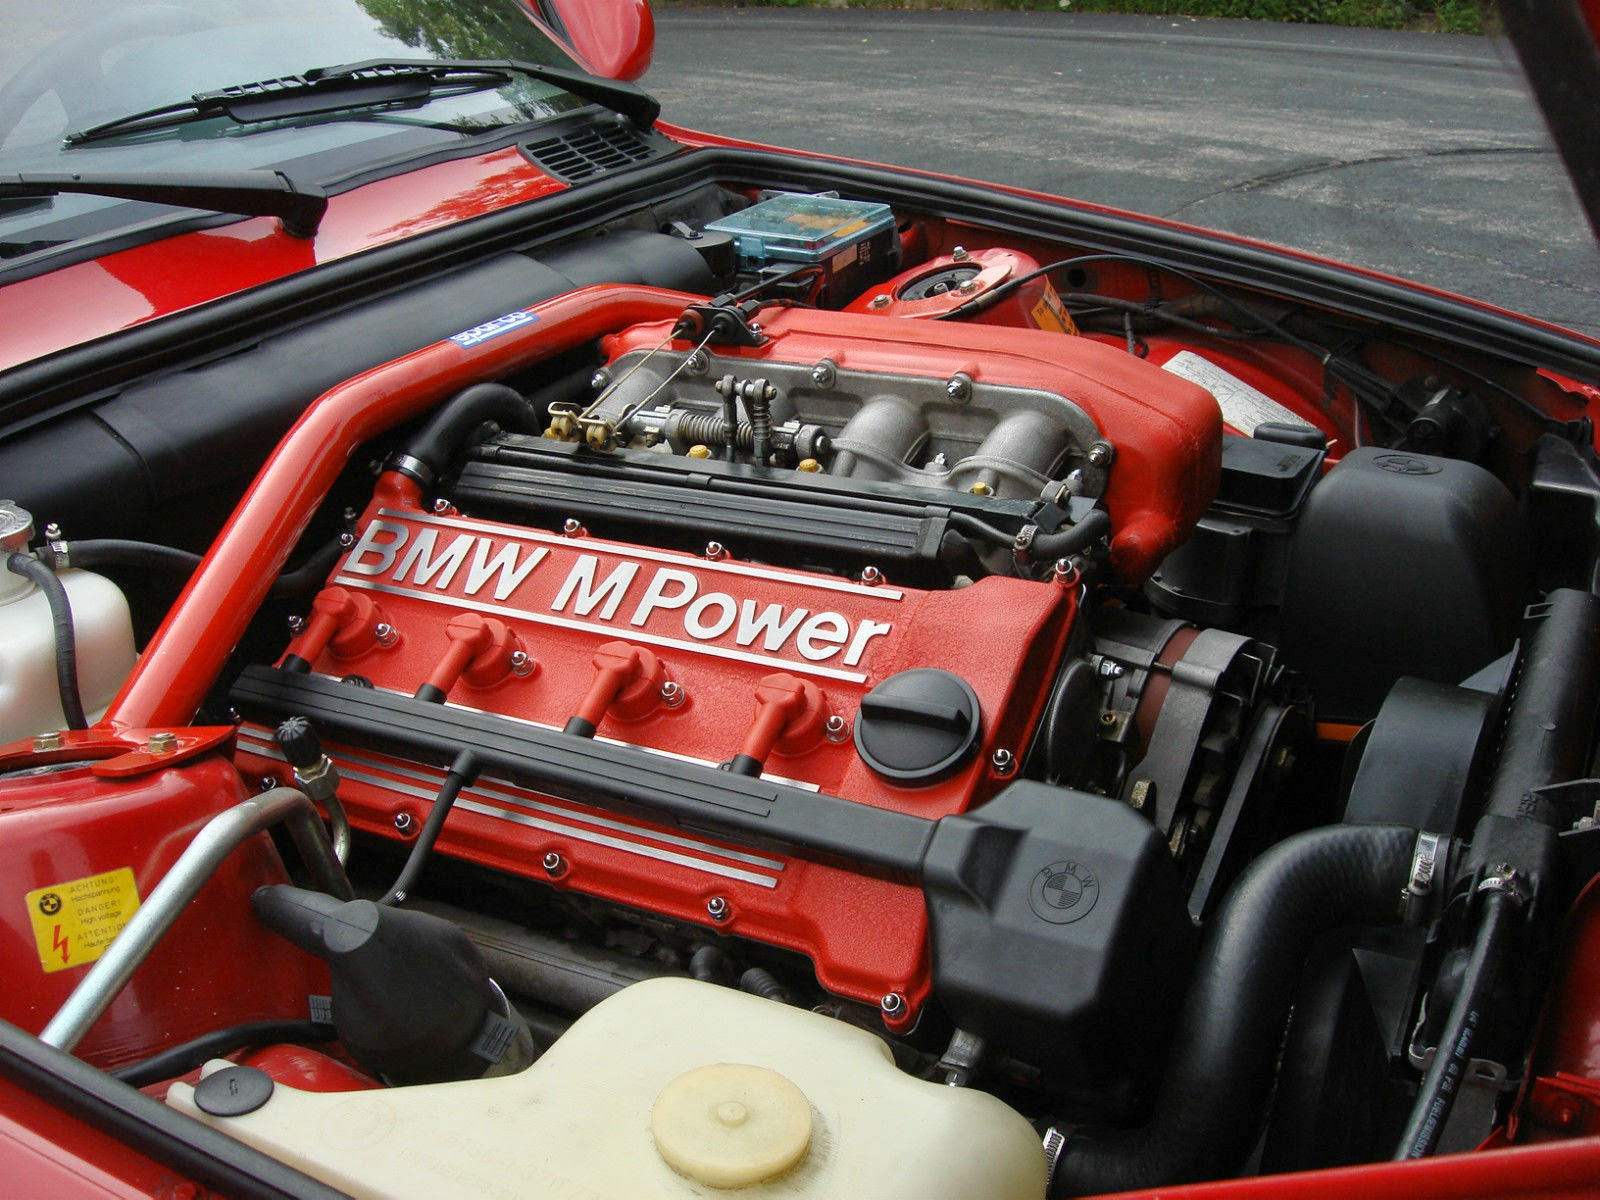 Making a racket under the hood of an e30 m3 is an engine surprisingly short on cylinders a dohc inline 4 the s14b23 that puts out 192 horsepower and 200